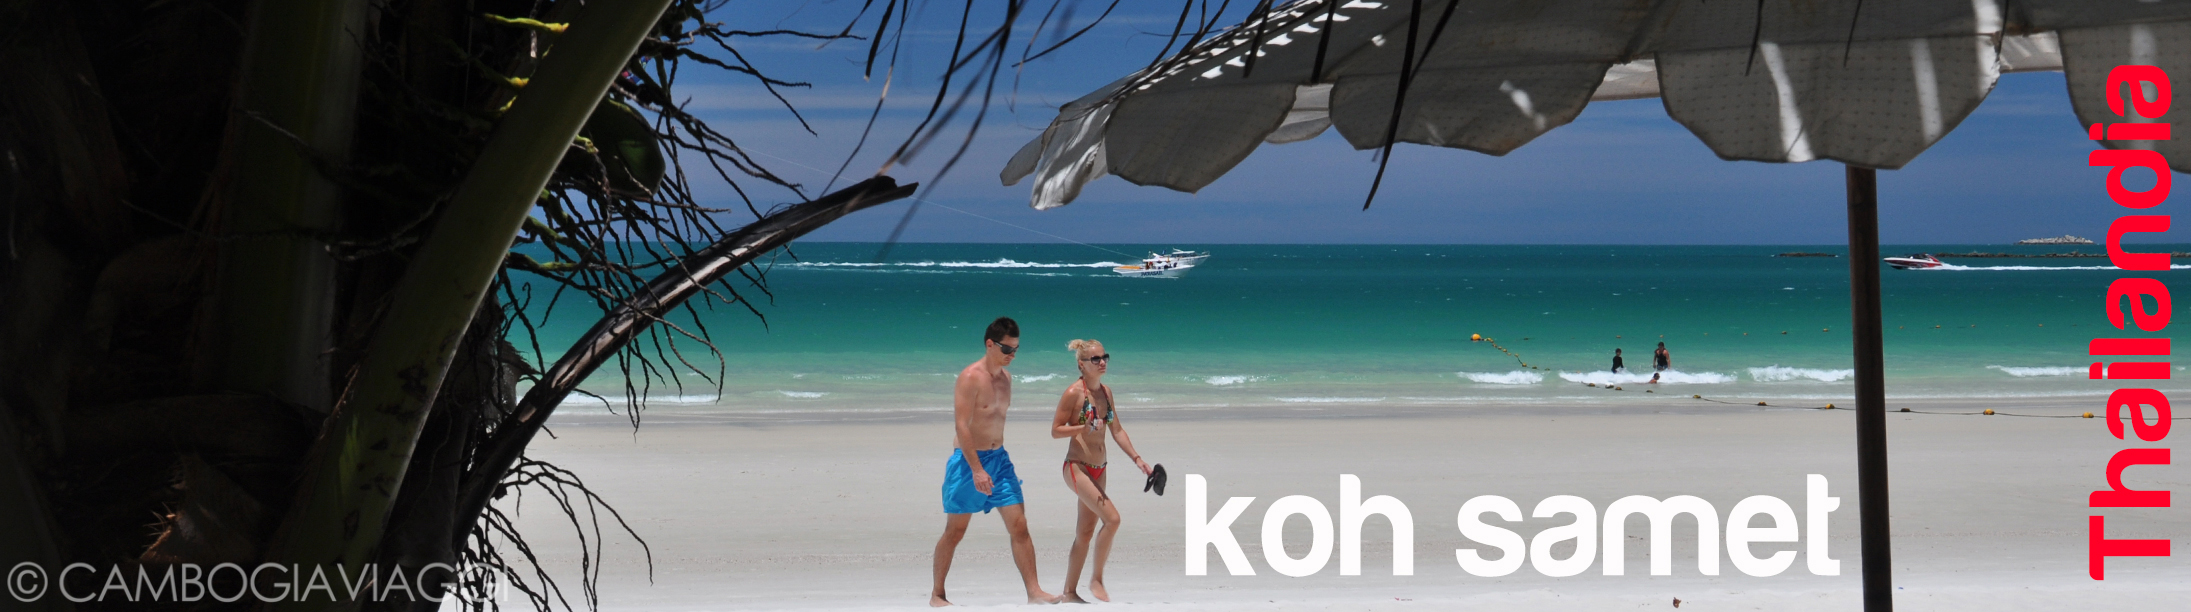 destination-kohsamet